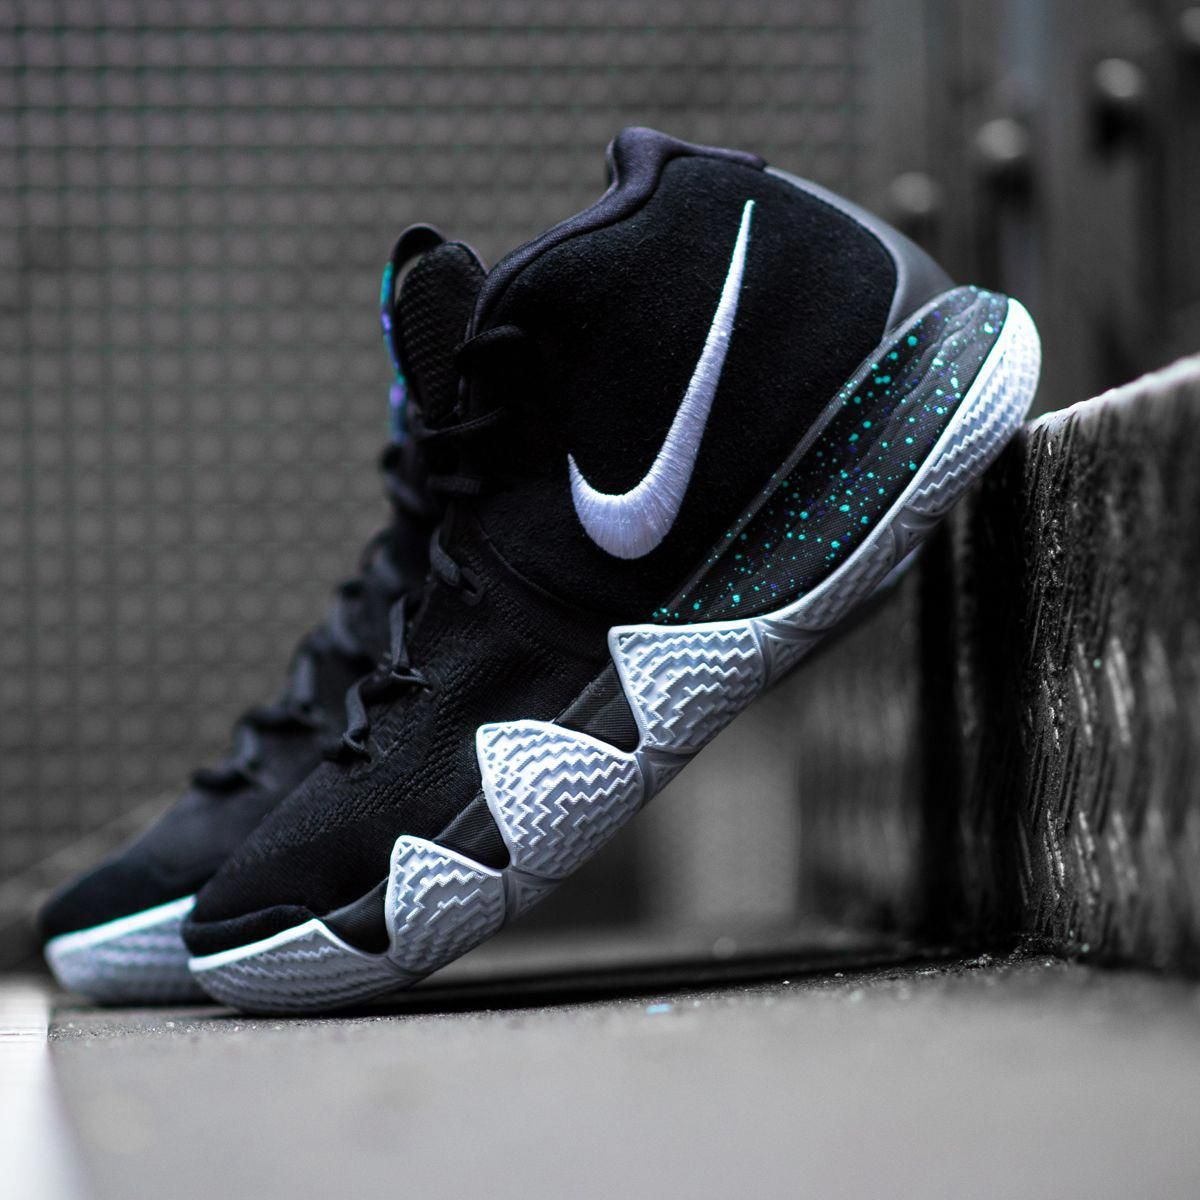 7e7e21936d89 Kyrie s got some new shoes! Get the Nike Kyrie 4  Black Ice  now on  KICKZ.com and in selected stores!  BasketballShoes